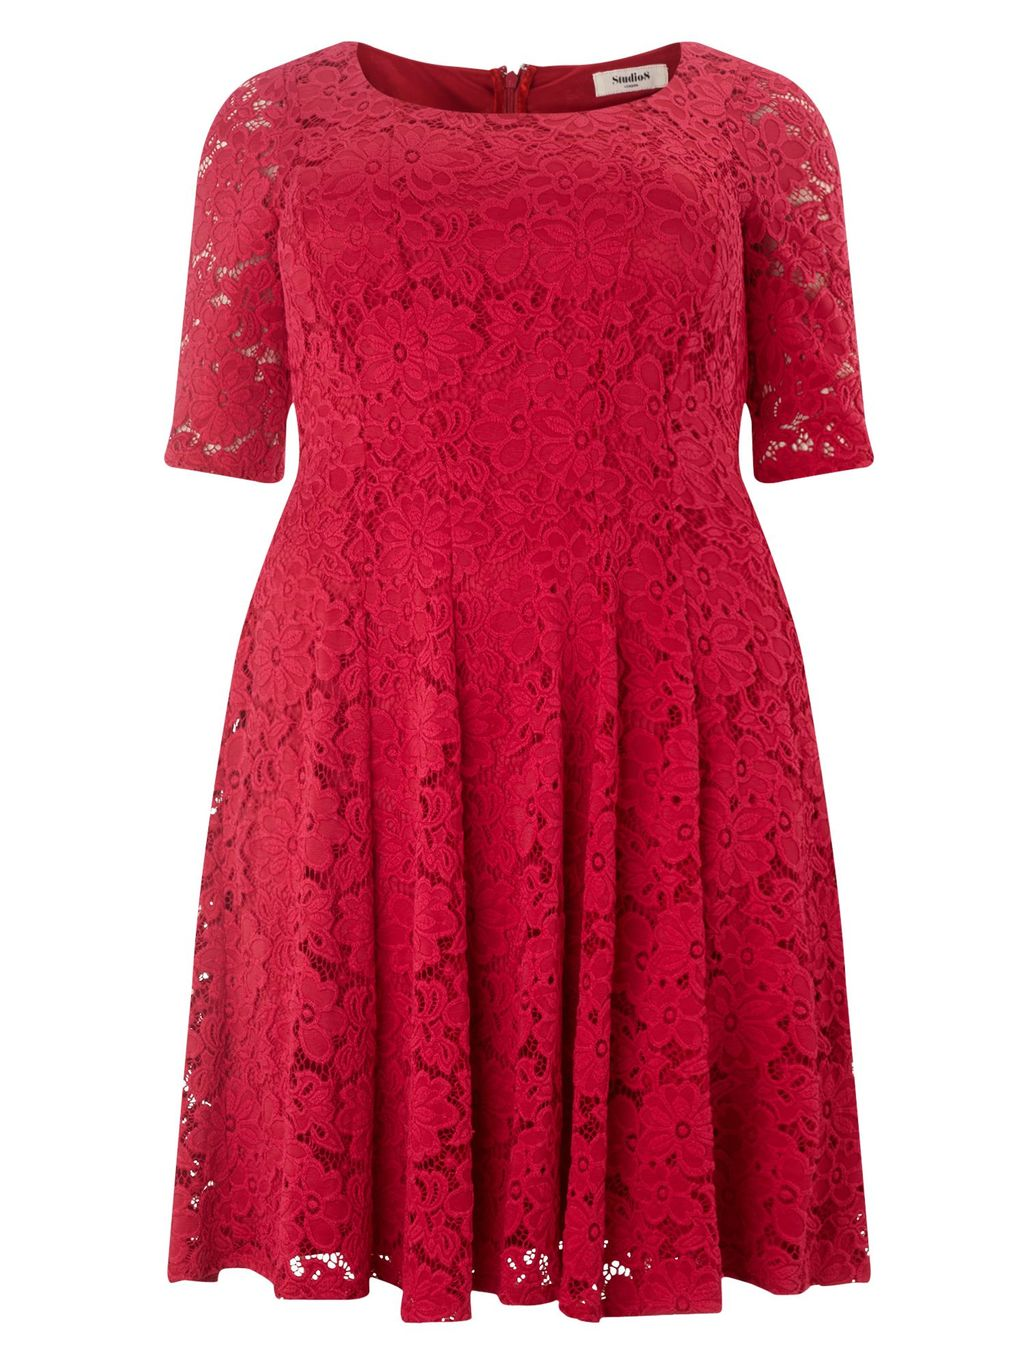 Viola Dress, Pink - style: shift; fit: fitted at waist; occasions: evening, occasion; length: just above the knee; fibres: polyester/polyamide - stretch; neckline: crew; sleeve length: short sleeve; sleeve style: standard; texture group: lace; pattern type: fabric; pattern size: standard; pattern: patterned/print; predominant colour: raspberry; season: s/s 2016; wardrobe: event